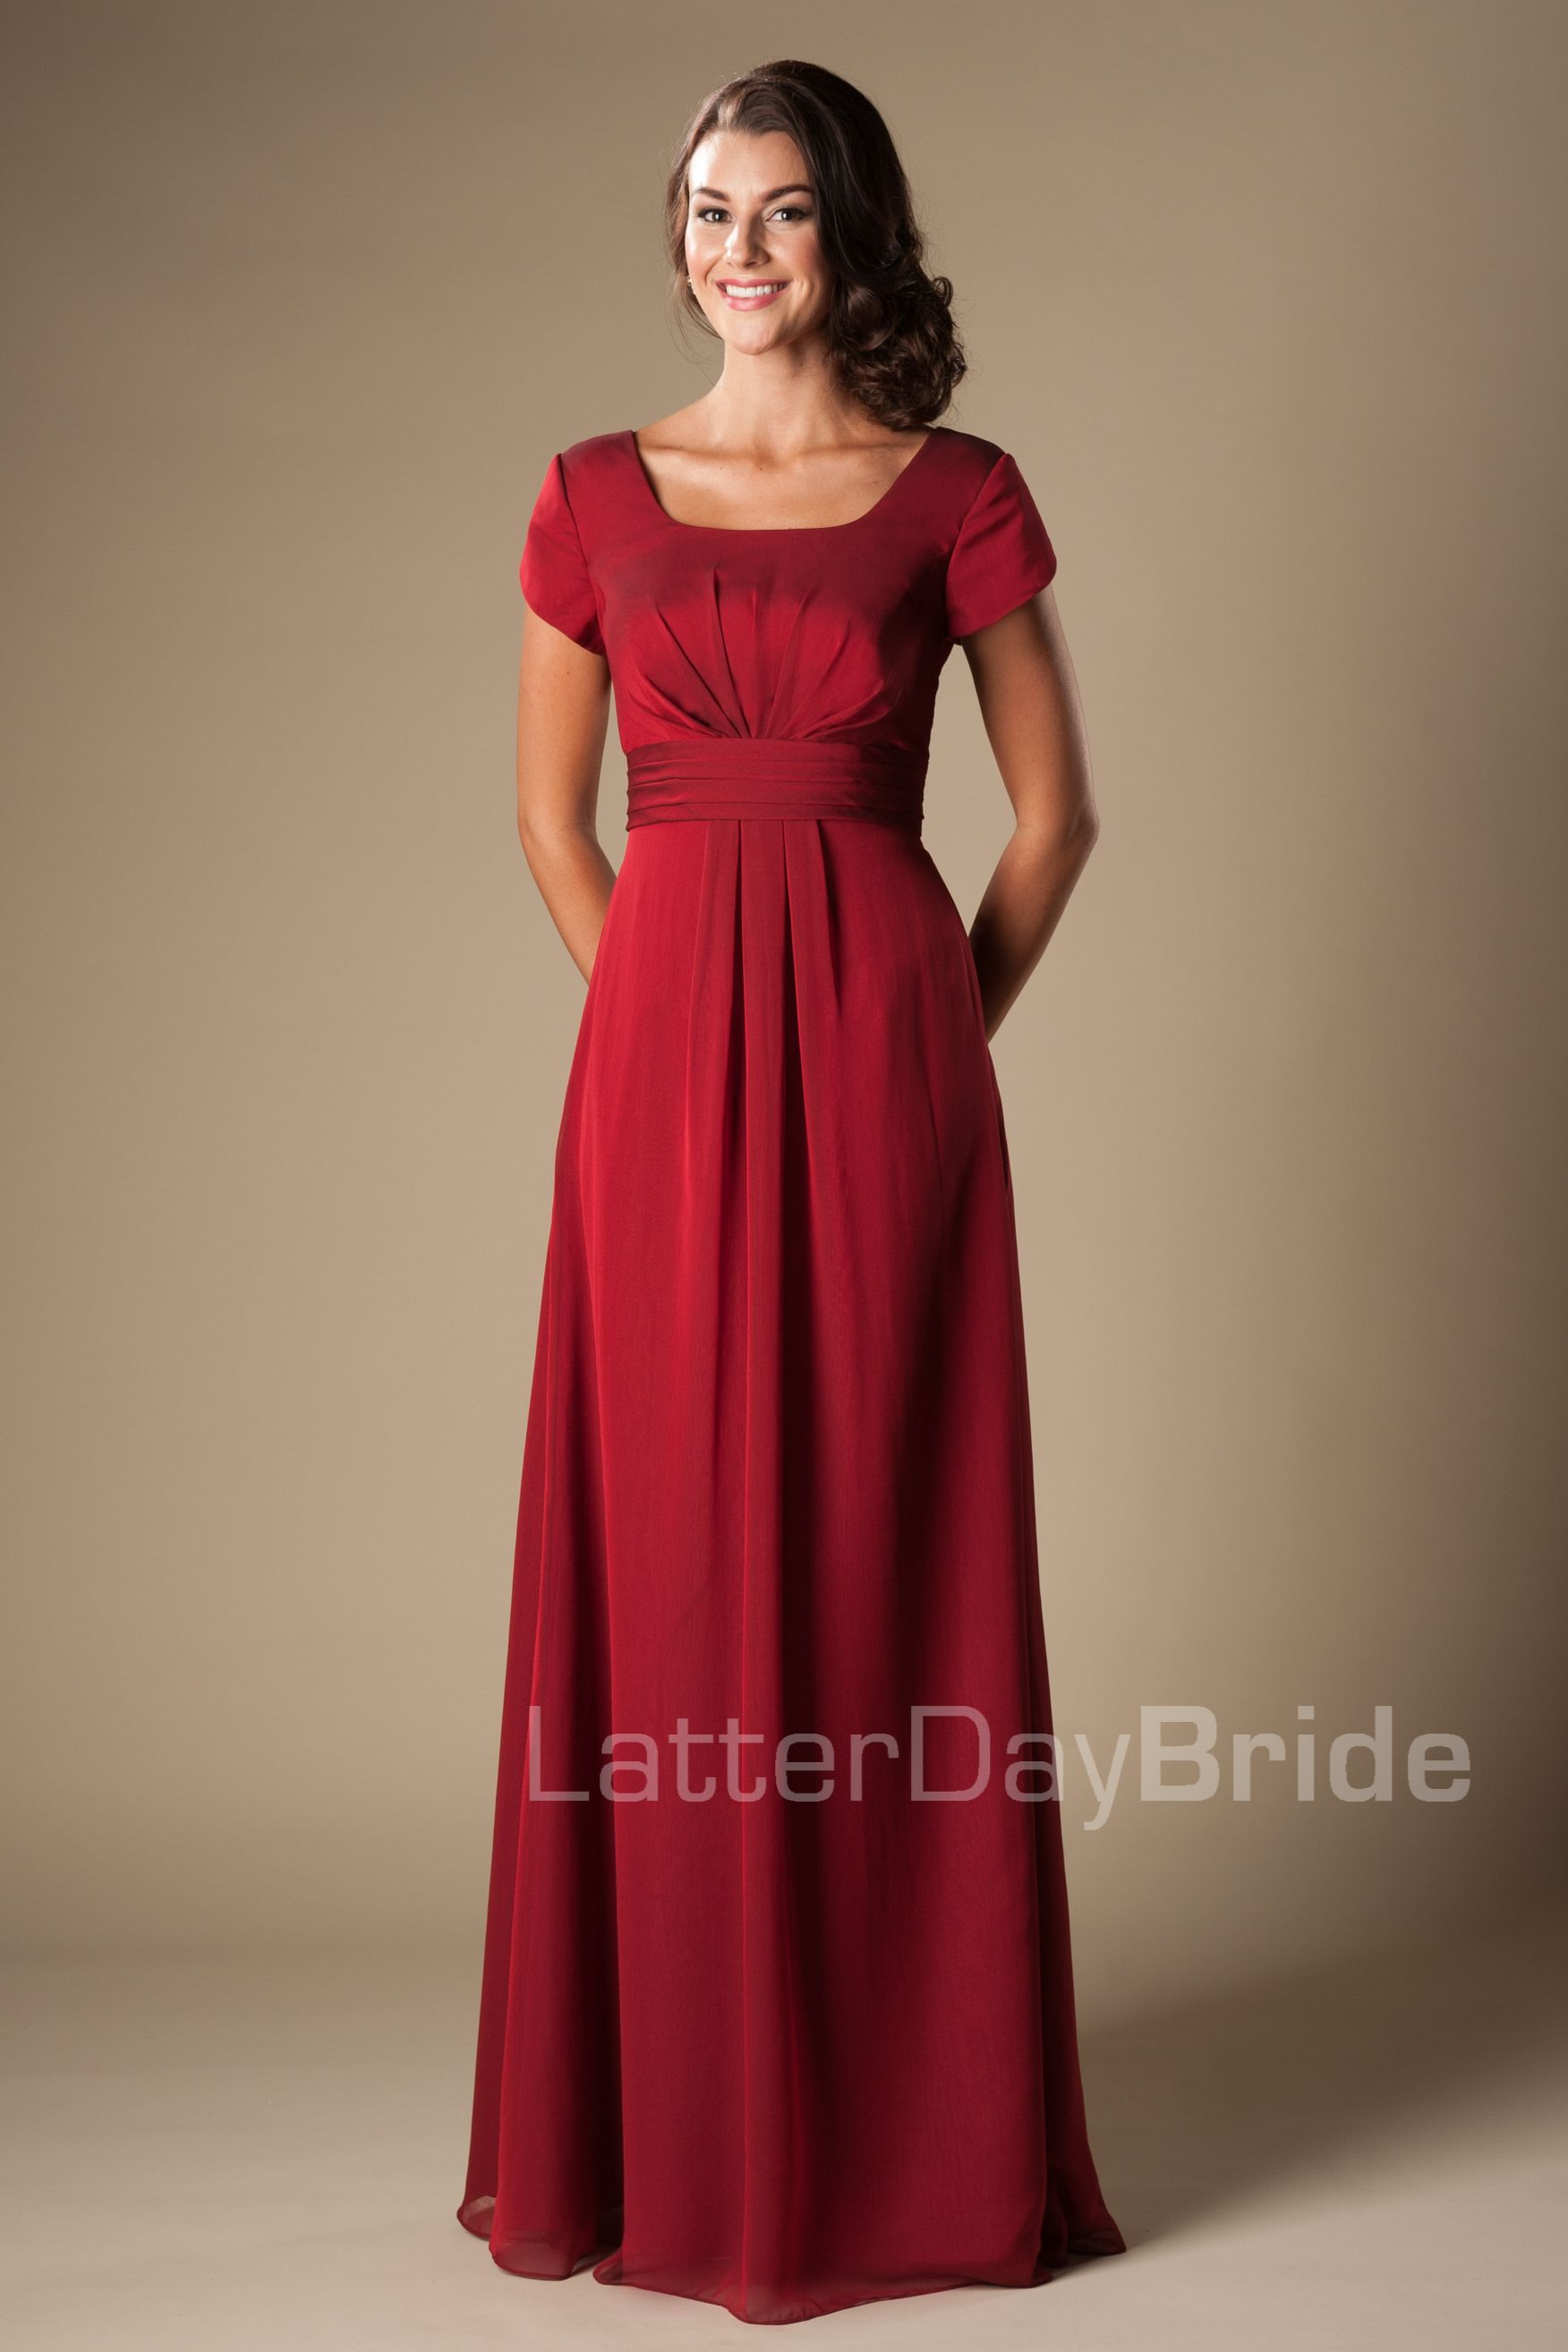 Dark Red Chiffon Bridesmaid Dresses